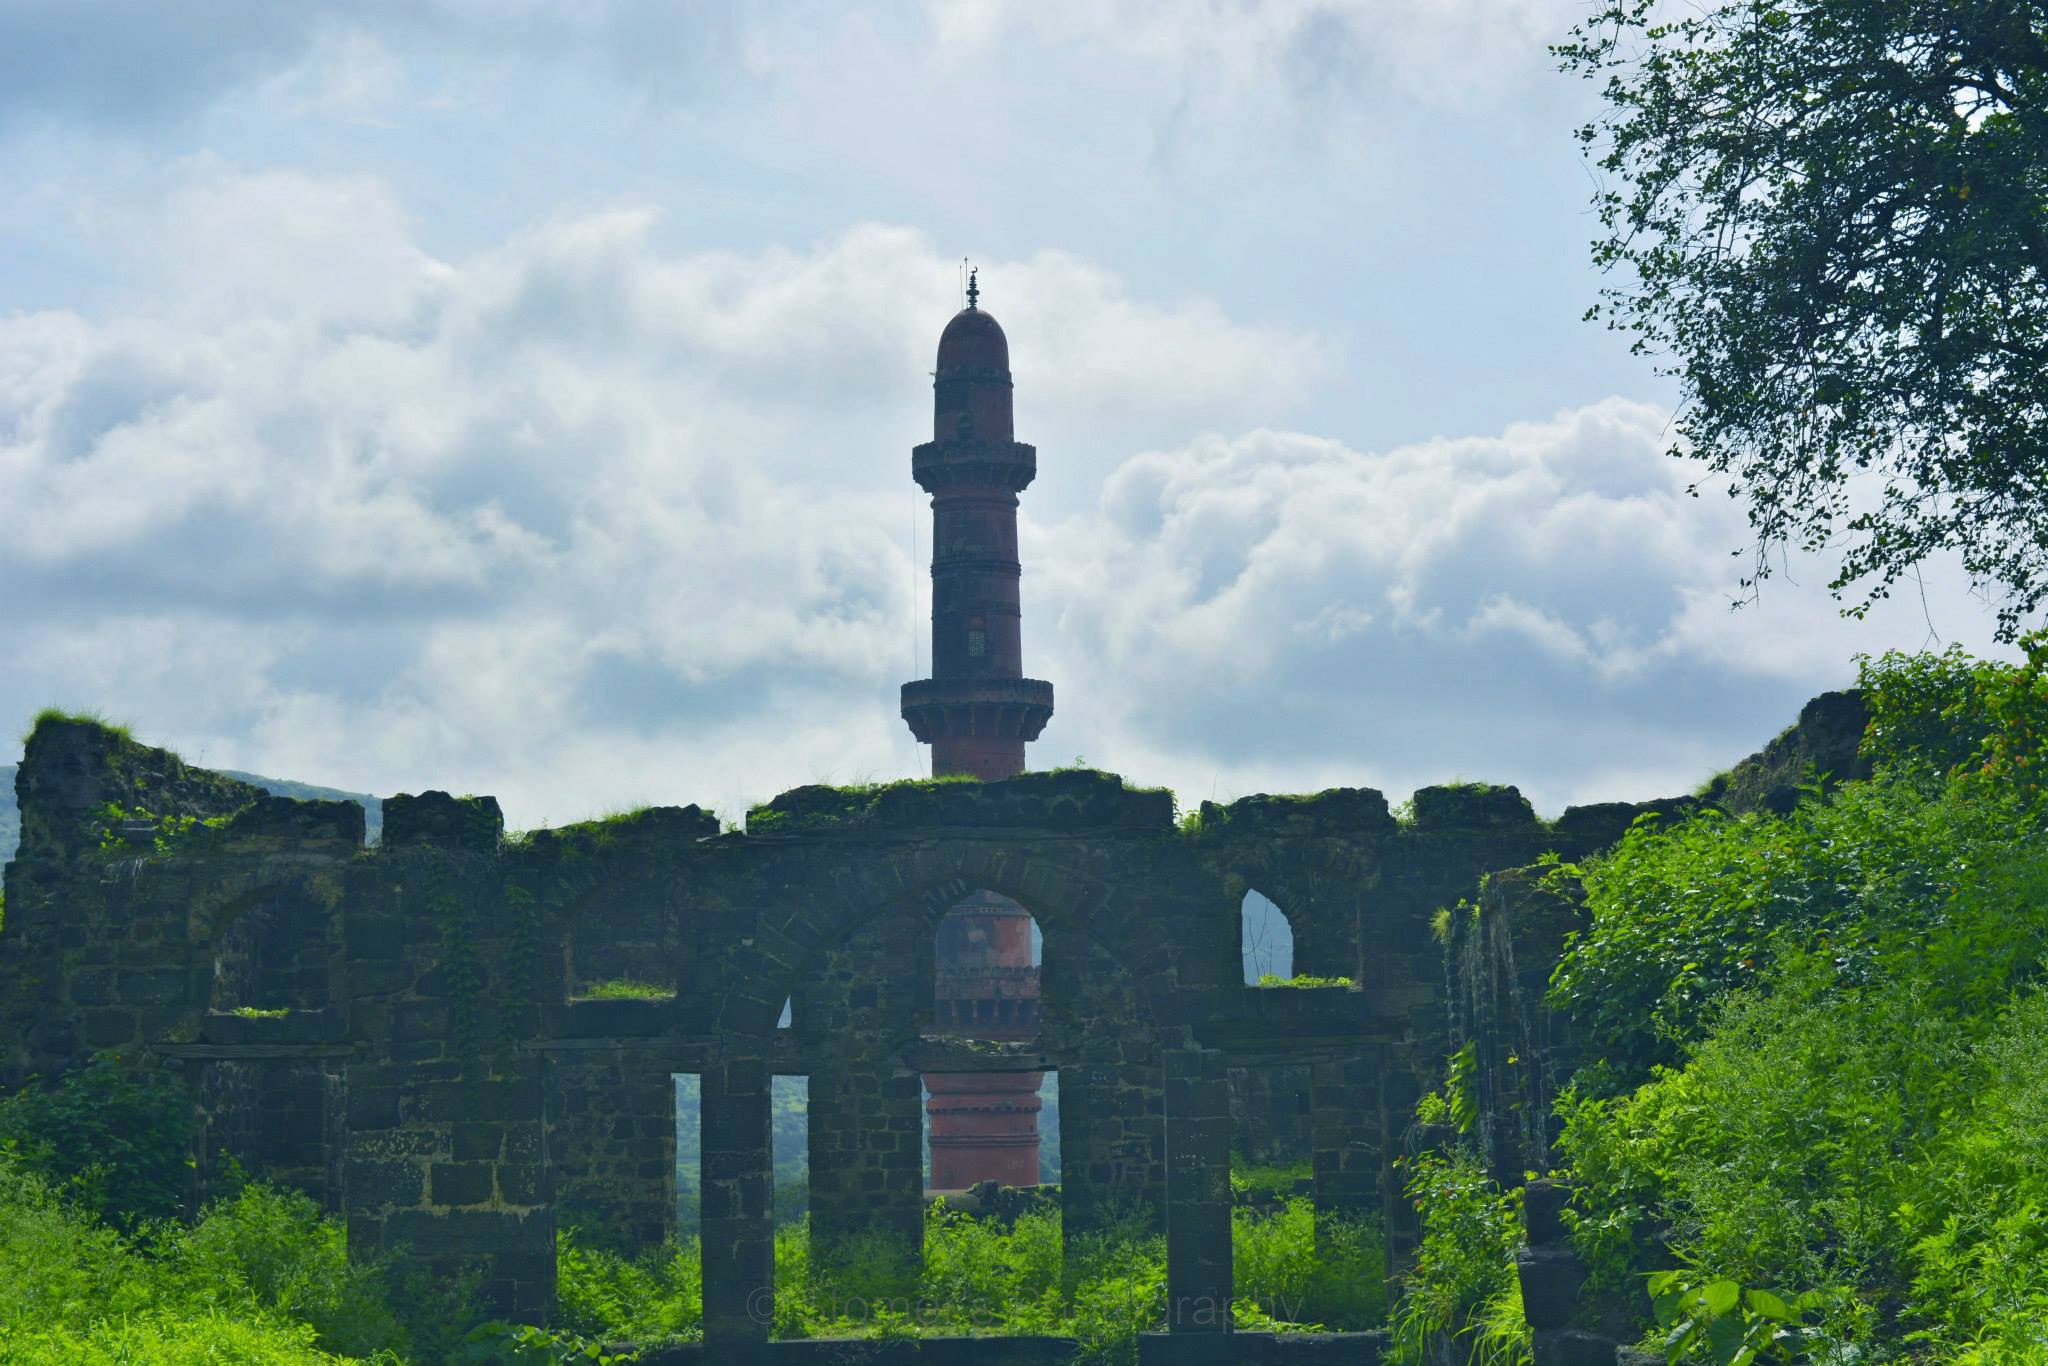 Chand Minar at Daulatabad Fort